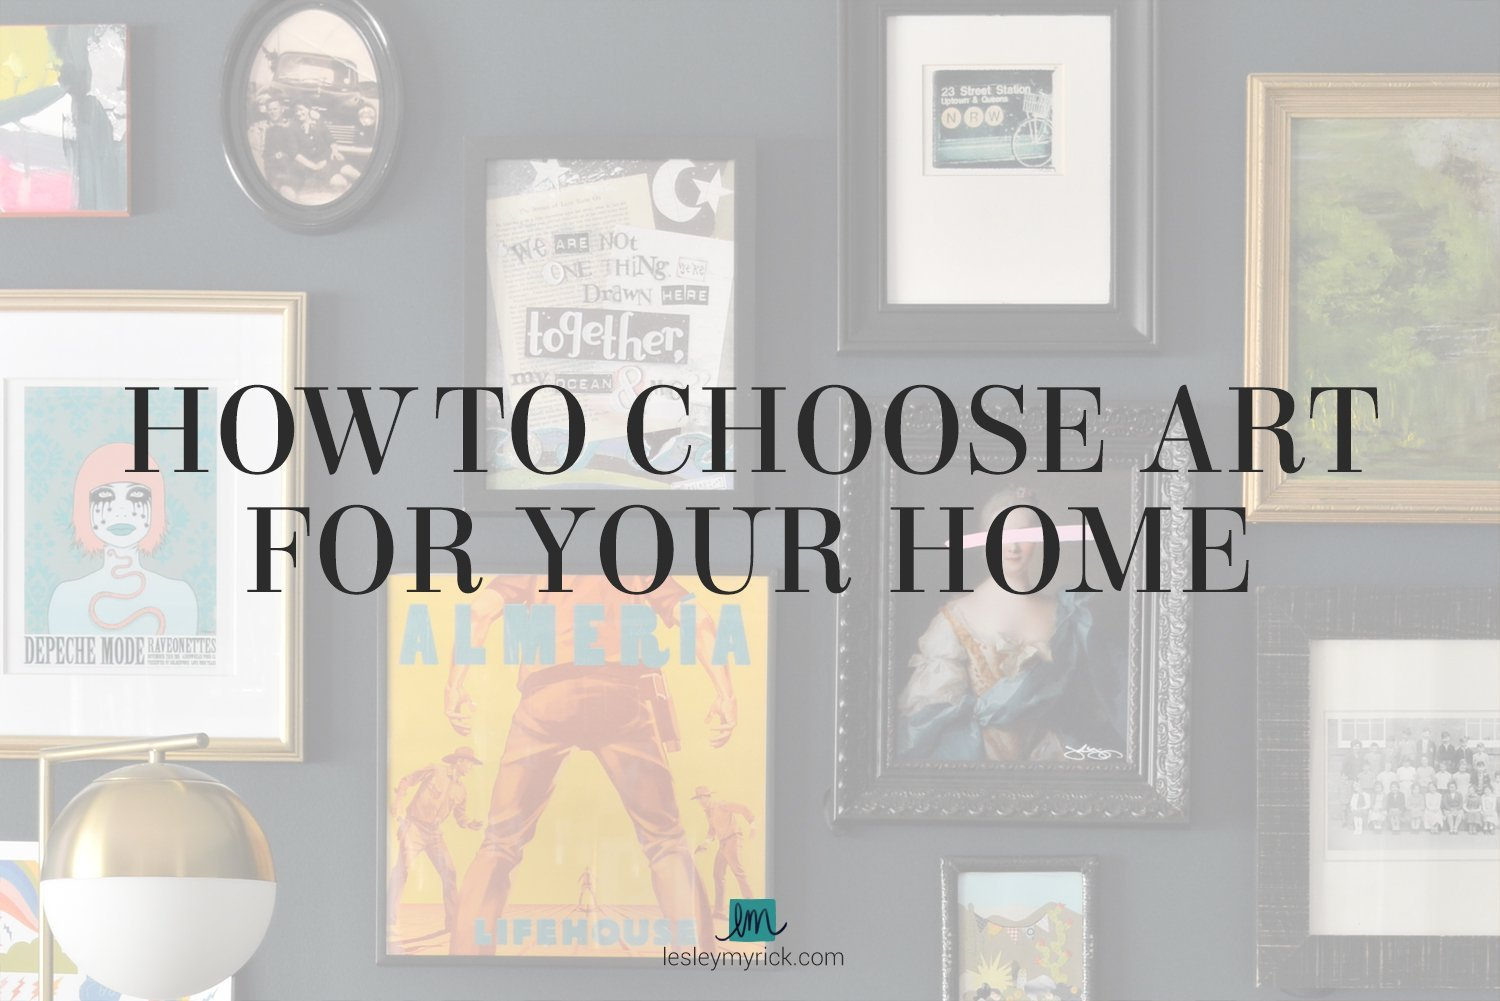 How to Choose Art for Your Home - tips from interior designer Lesley Myrick